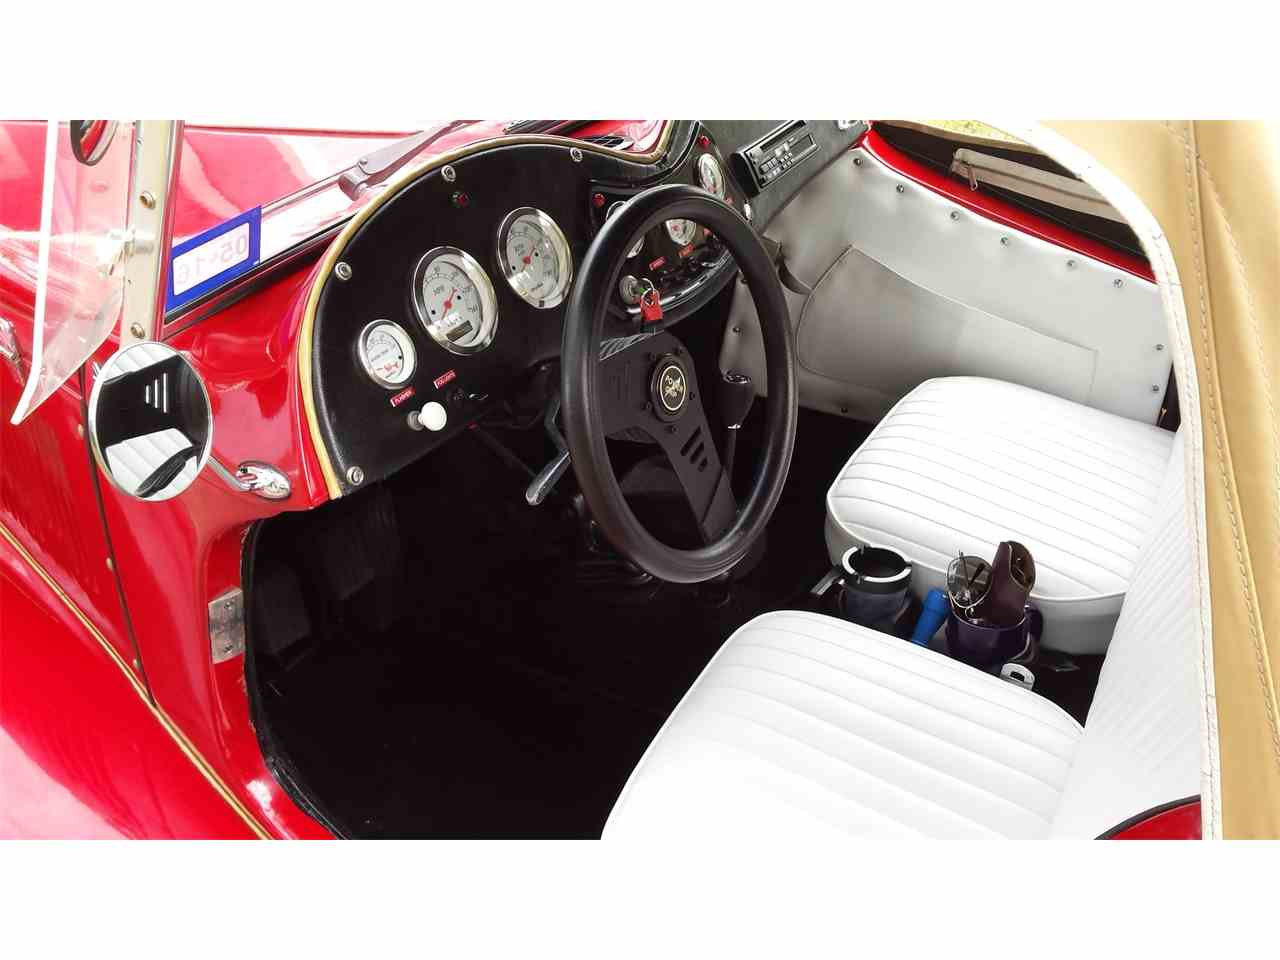 Large Picture of 1952 MG TD located in Escondido California - $9,999.00 Offered by a Private Seller - IR3X